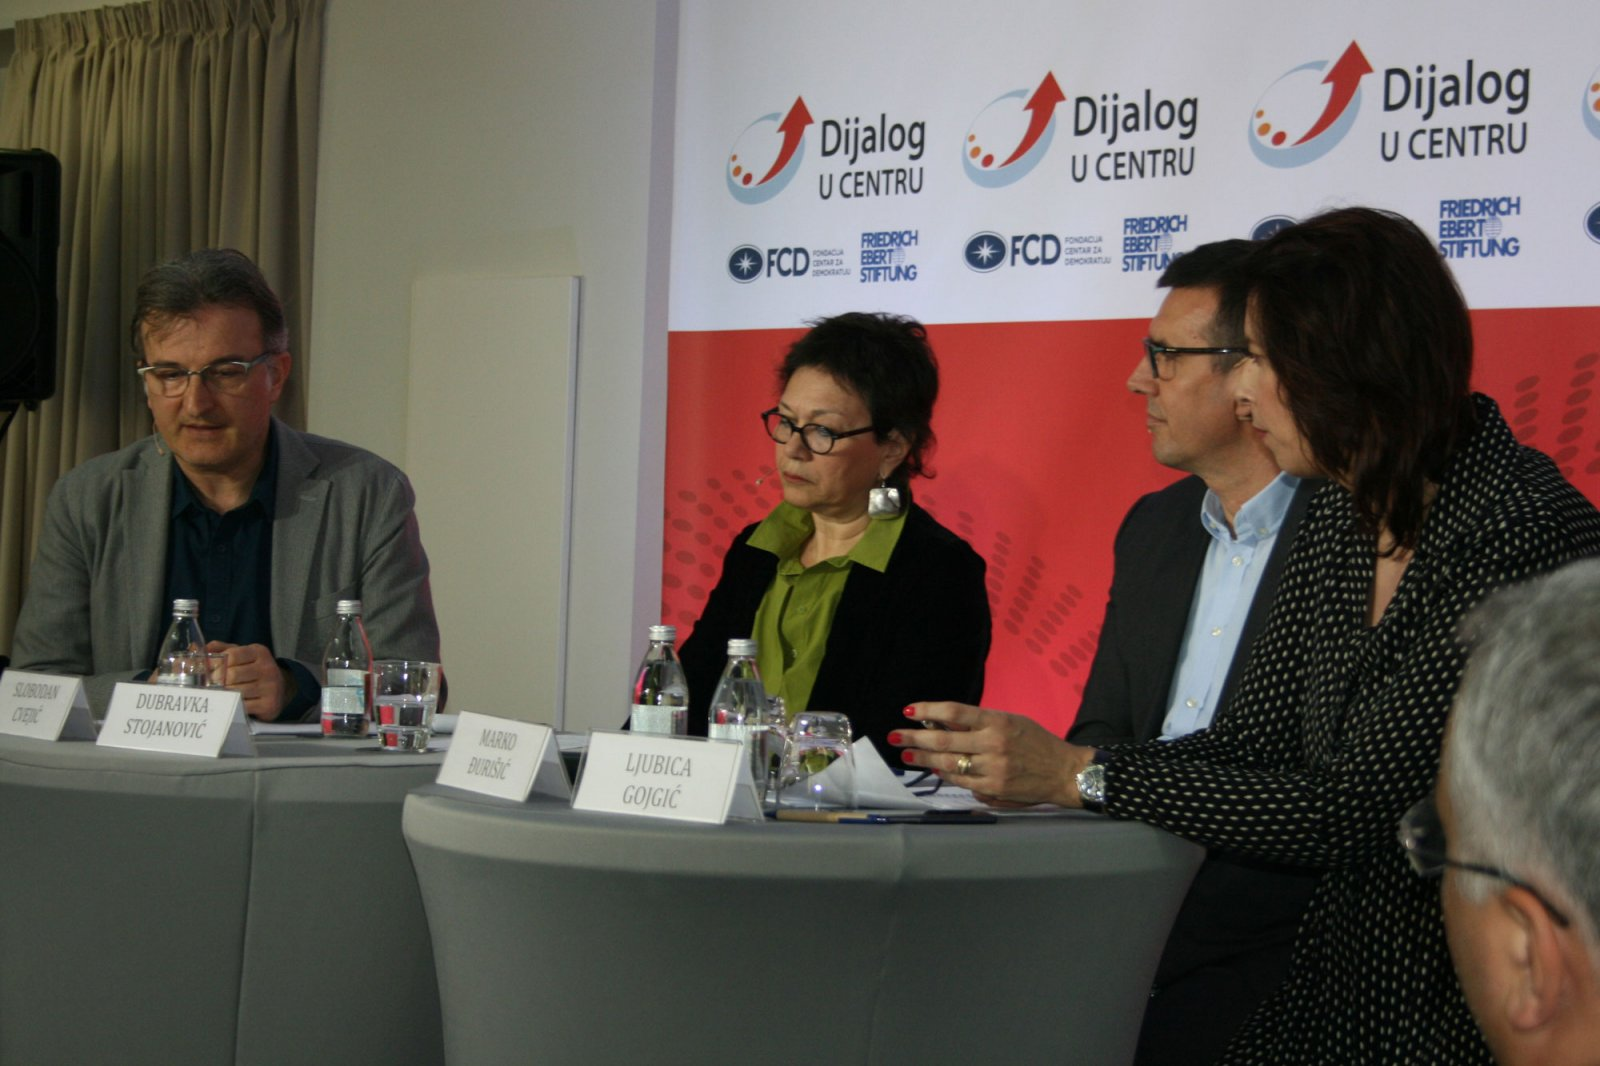 Dialogue in the Center: How to Reach a Political Solution? - Civic protests as a reaction to a deficit of justice and weakness of institutions